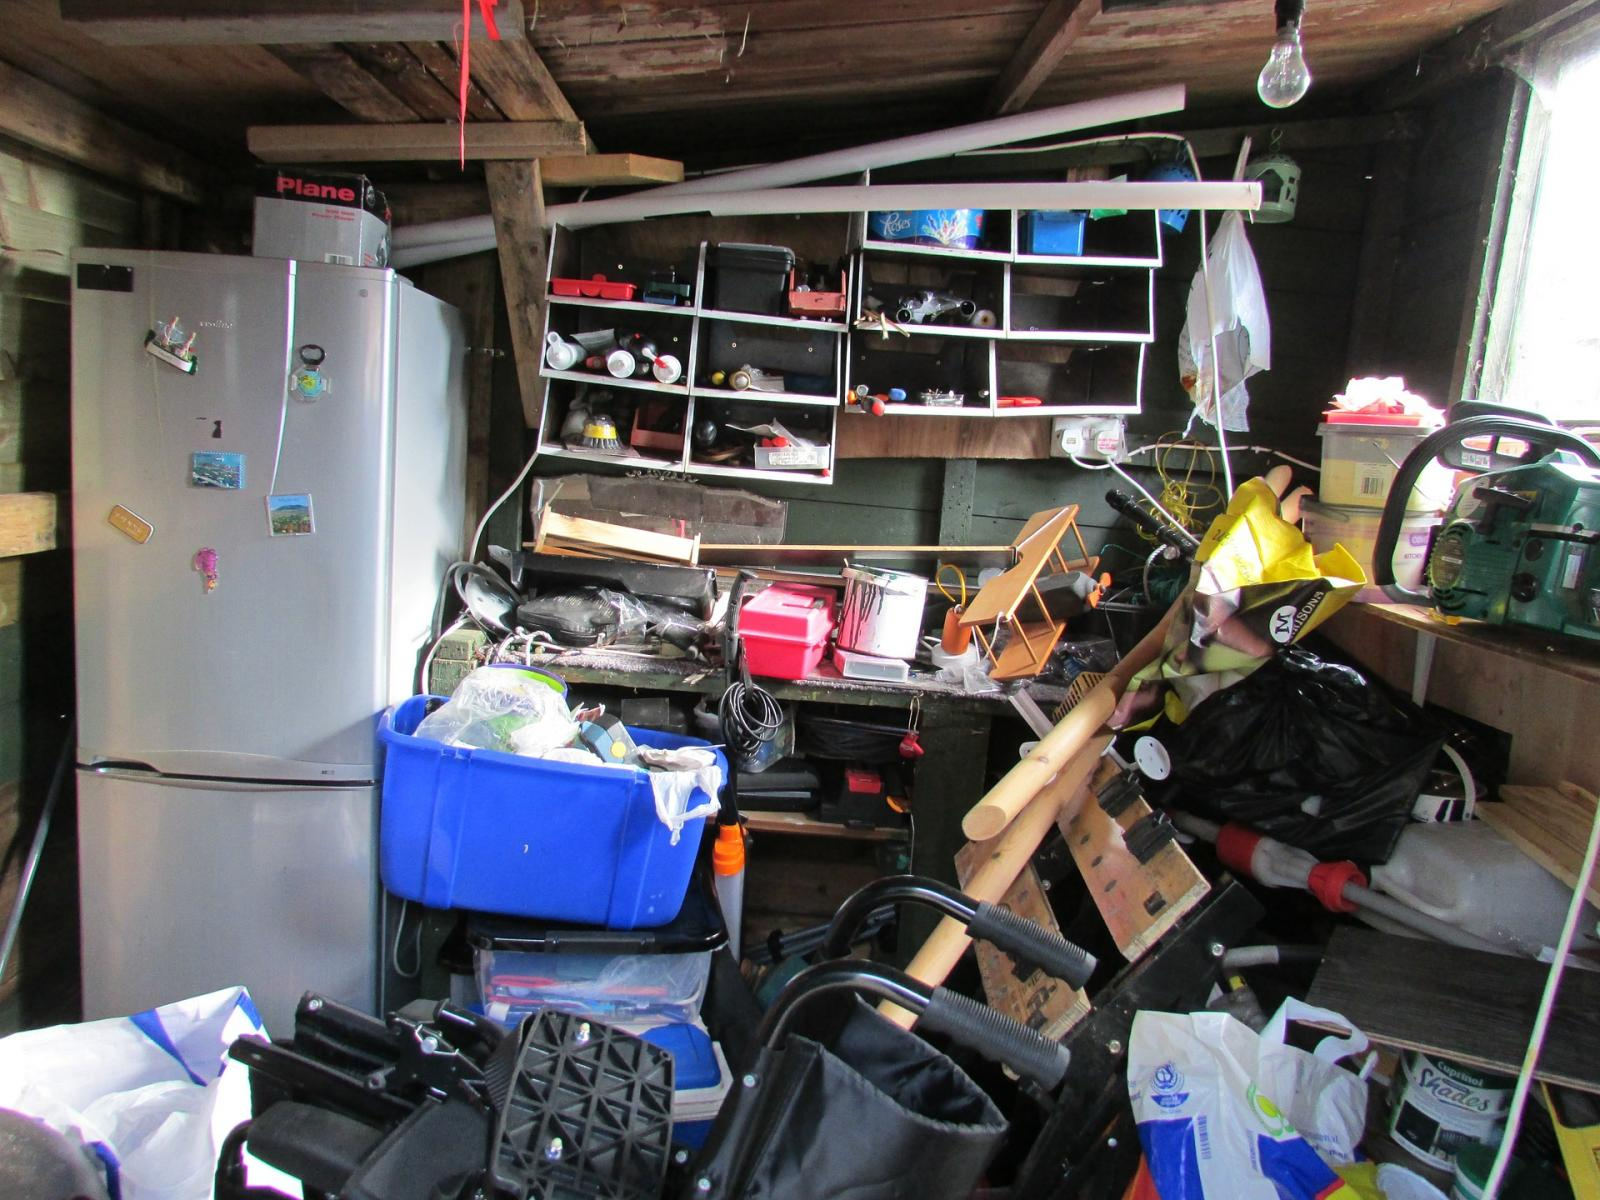 If you're not careful, temporary storage at home can become permanent. Move your things into a storage unit and reclaim your space!